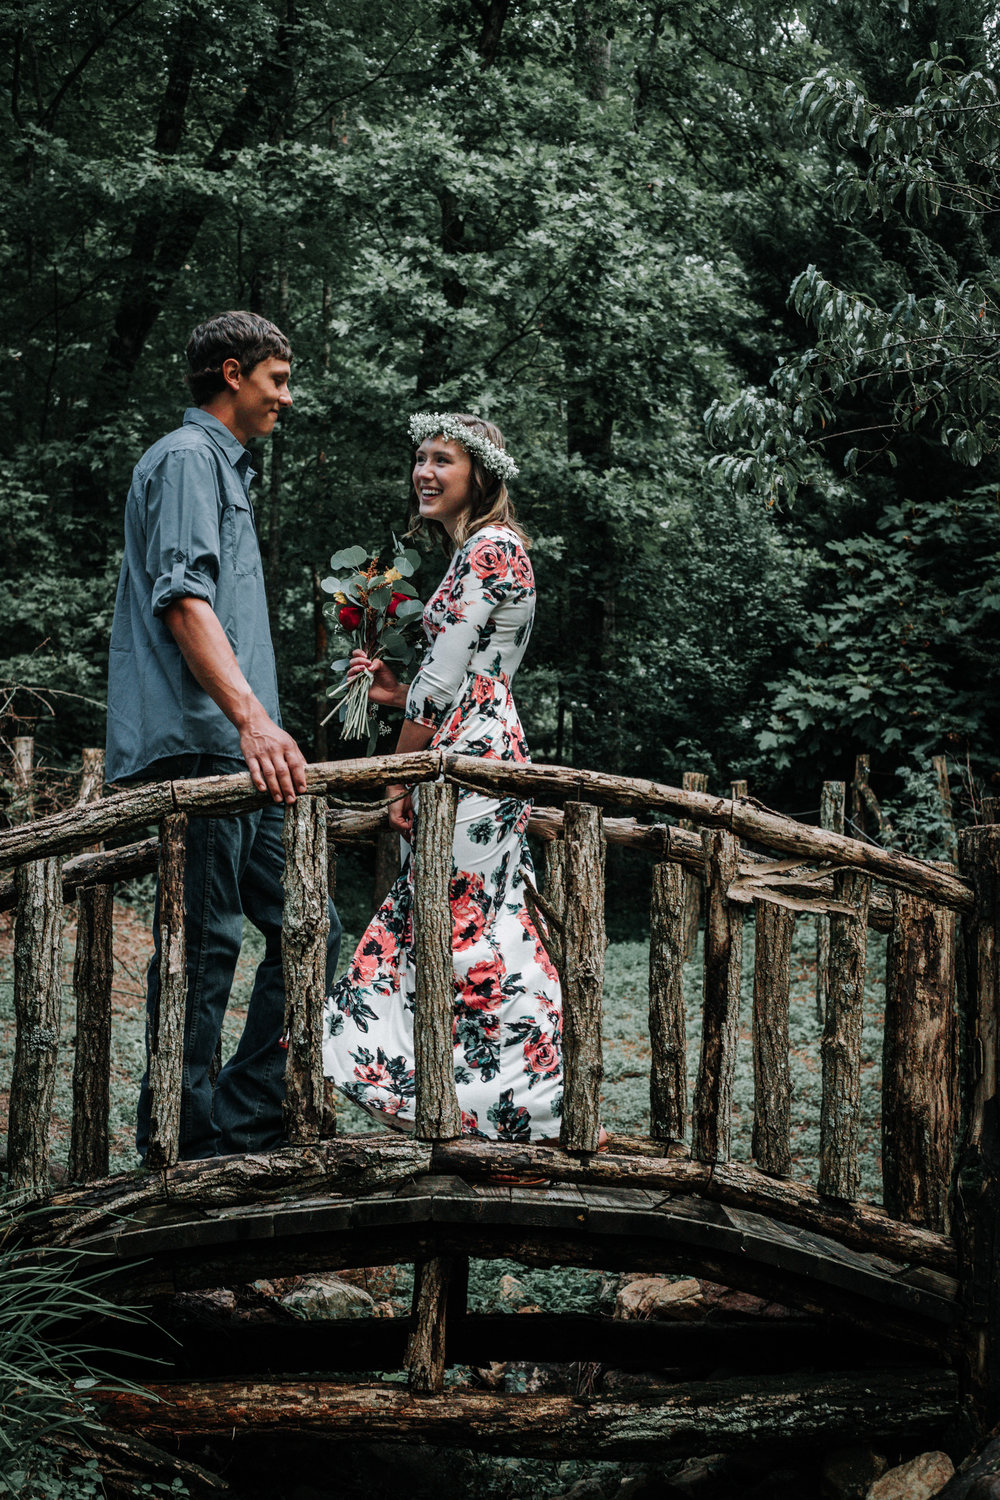 ideas-for-engagement-photos-what-to-wear.jpg